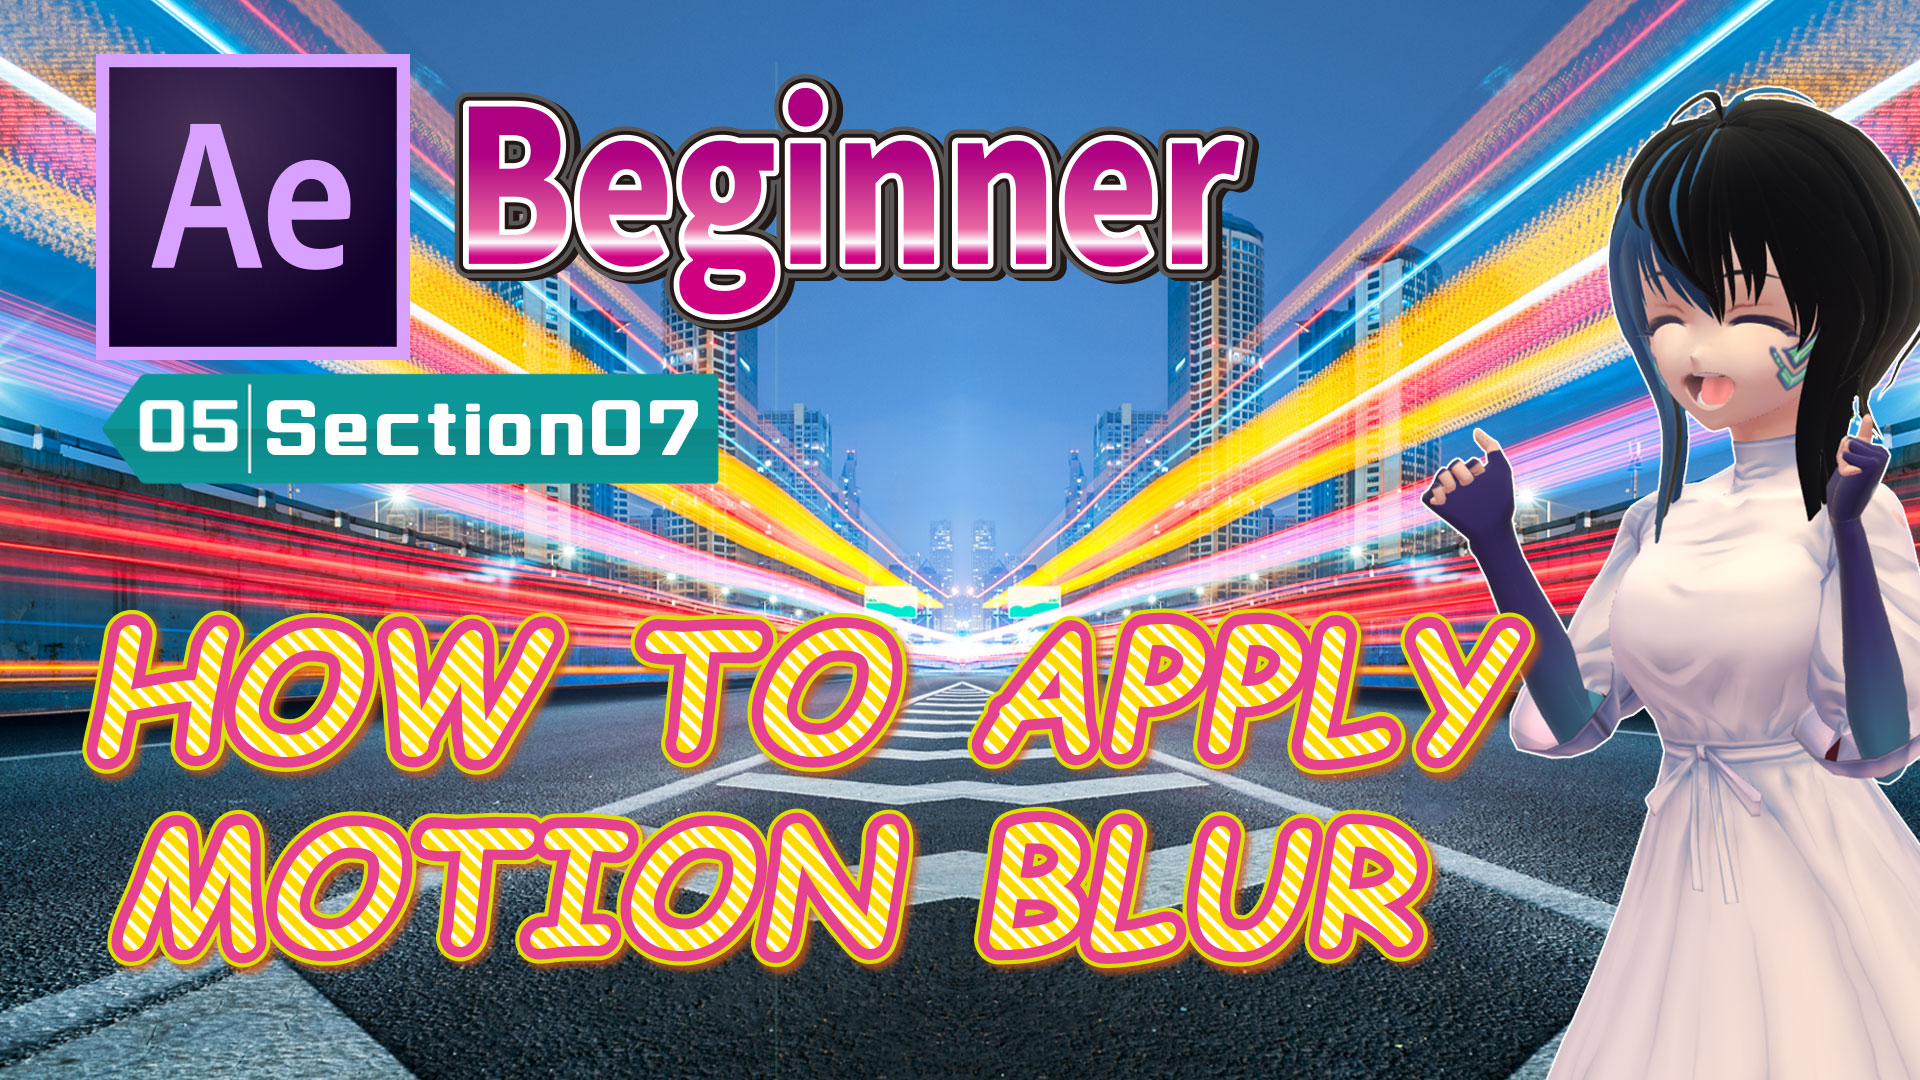 HOW TO APPLY MOTION BLUR